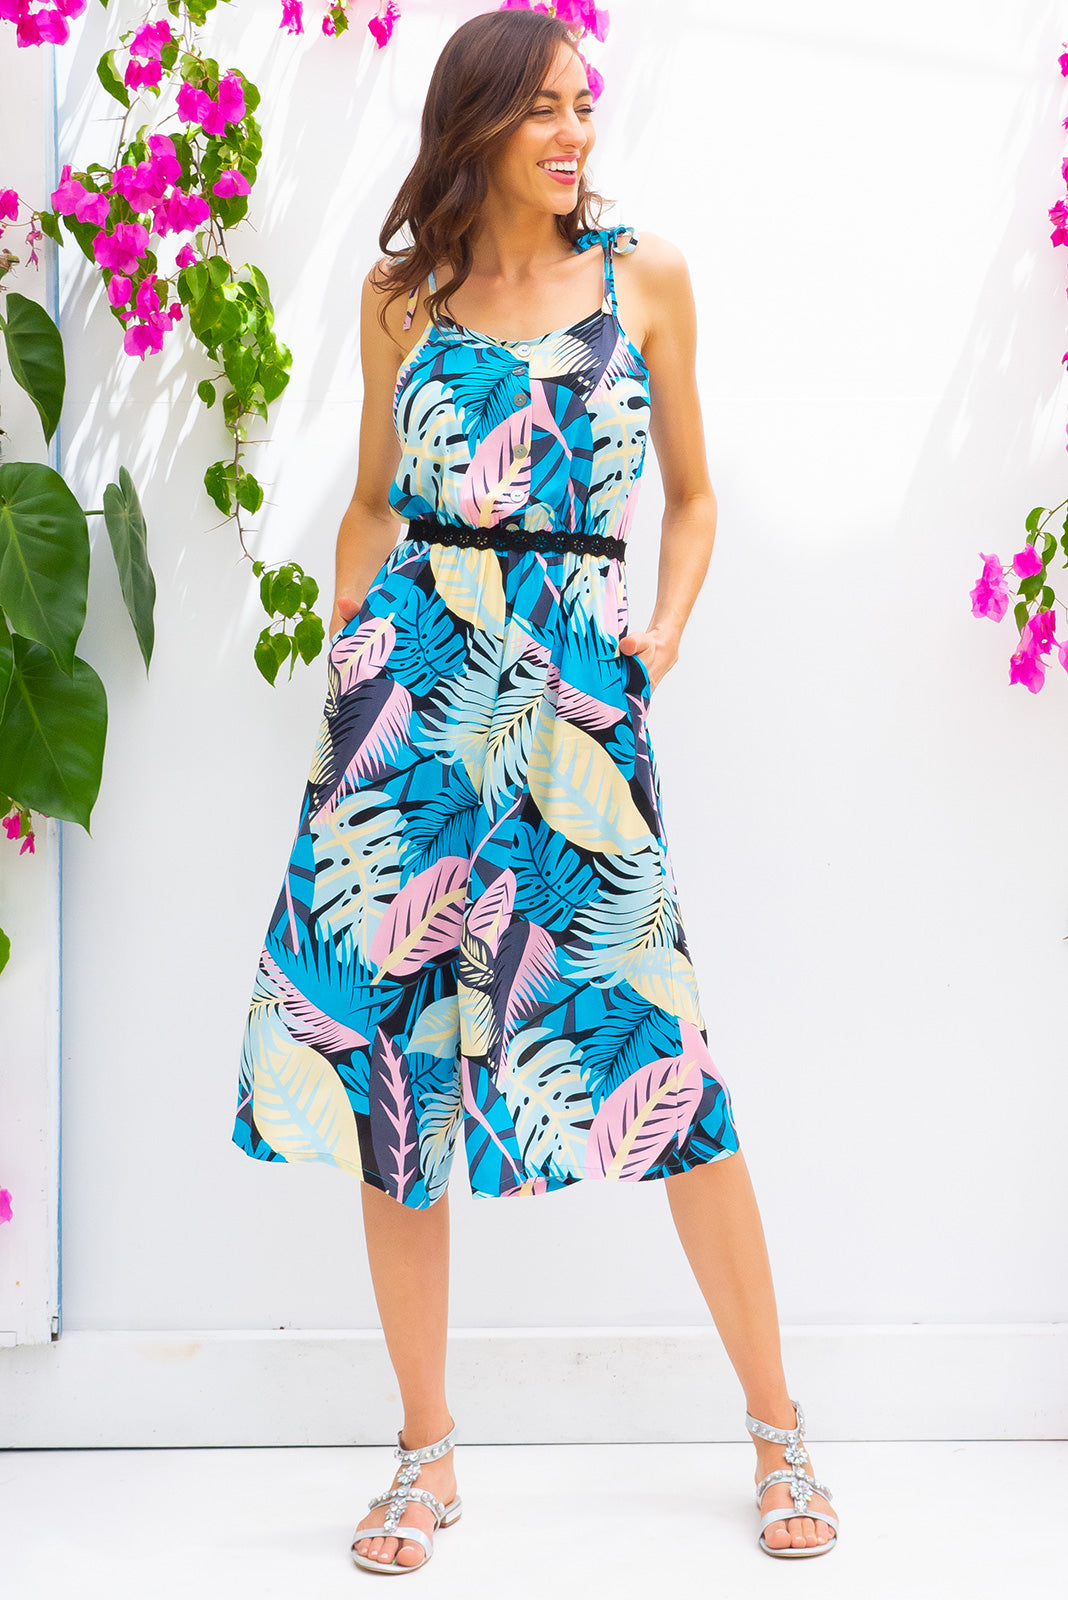 Sweet Pea Blue Style Midi jumpsuit features deep side pockets, an elastic waist and adjustable strap in a tropical print on a woven 100% rayon